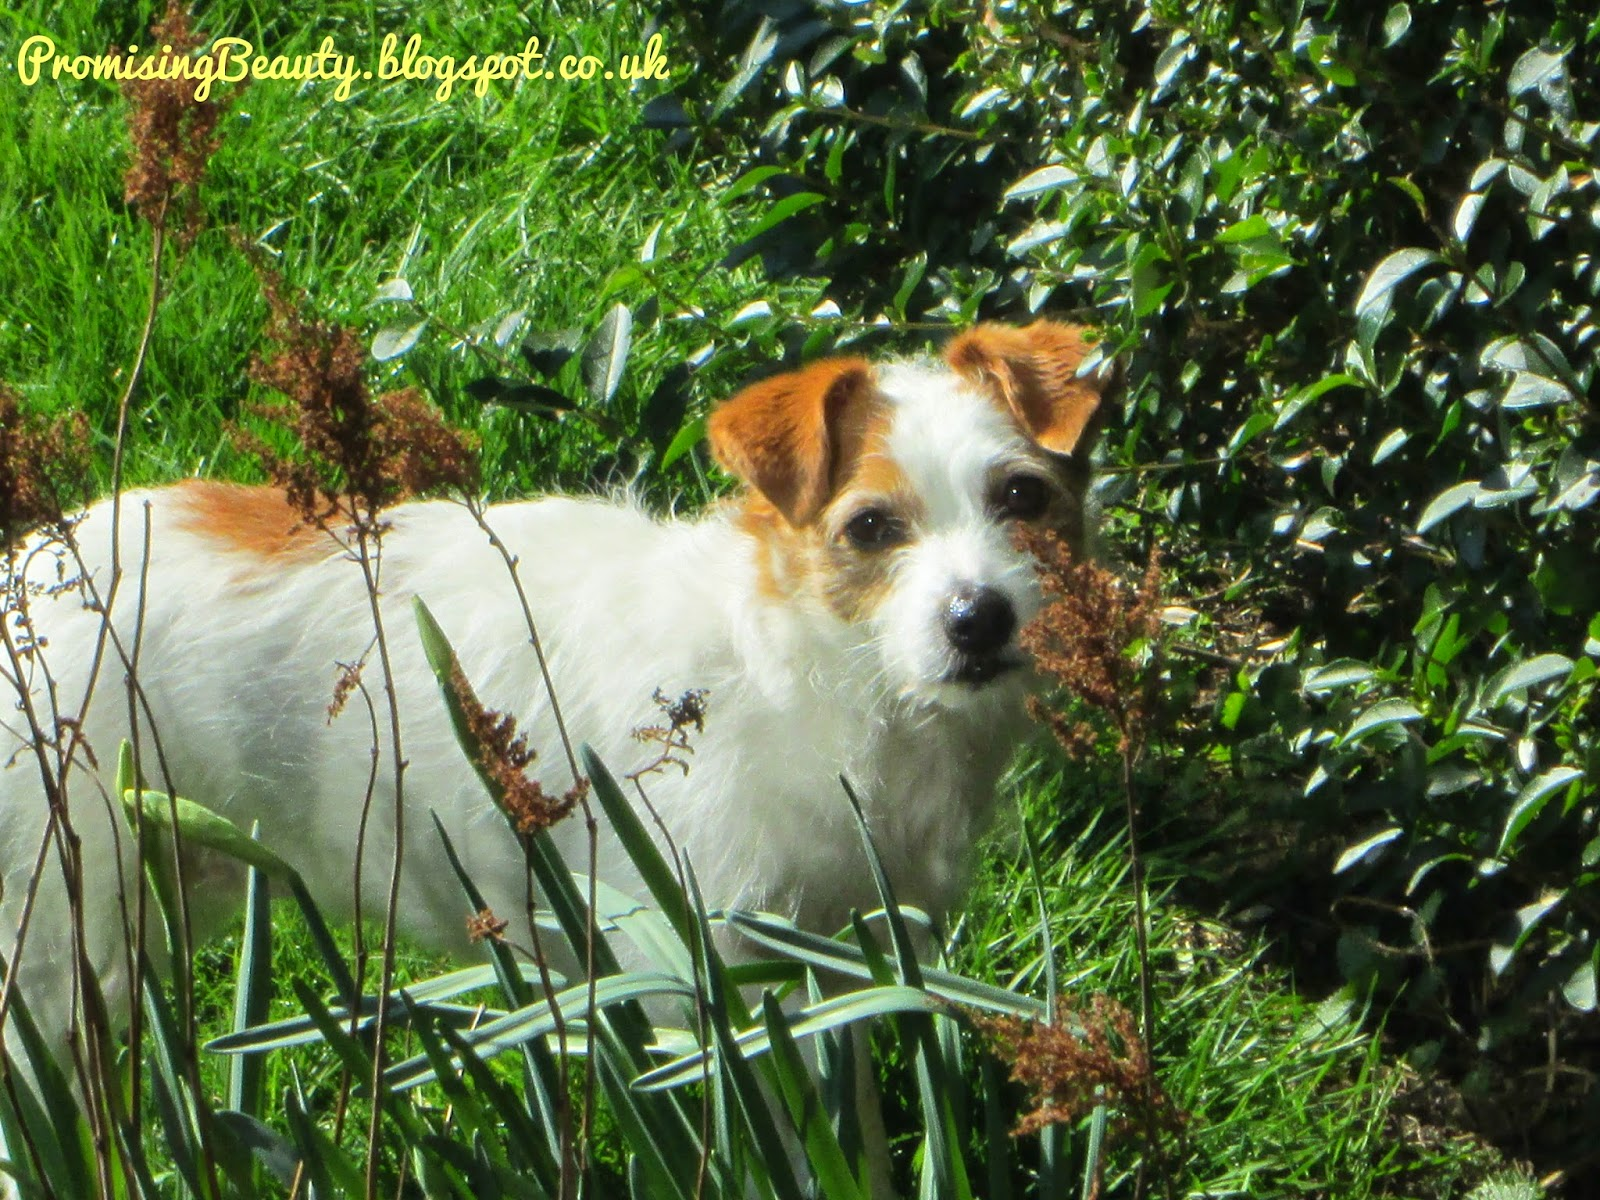 Beautiful little JAck Russell Terrier enjoyying the sunshine in the garden. She's such a small dog and so cute.